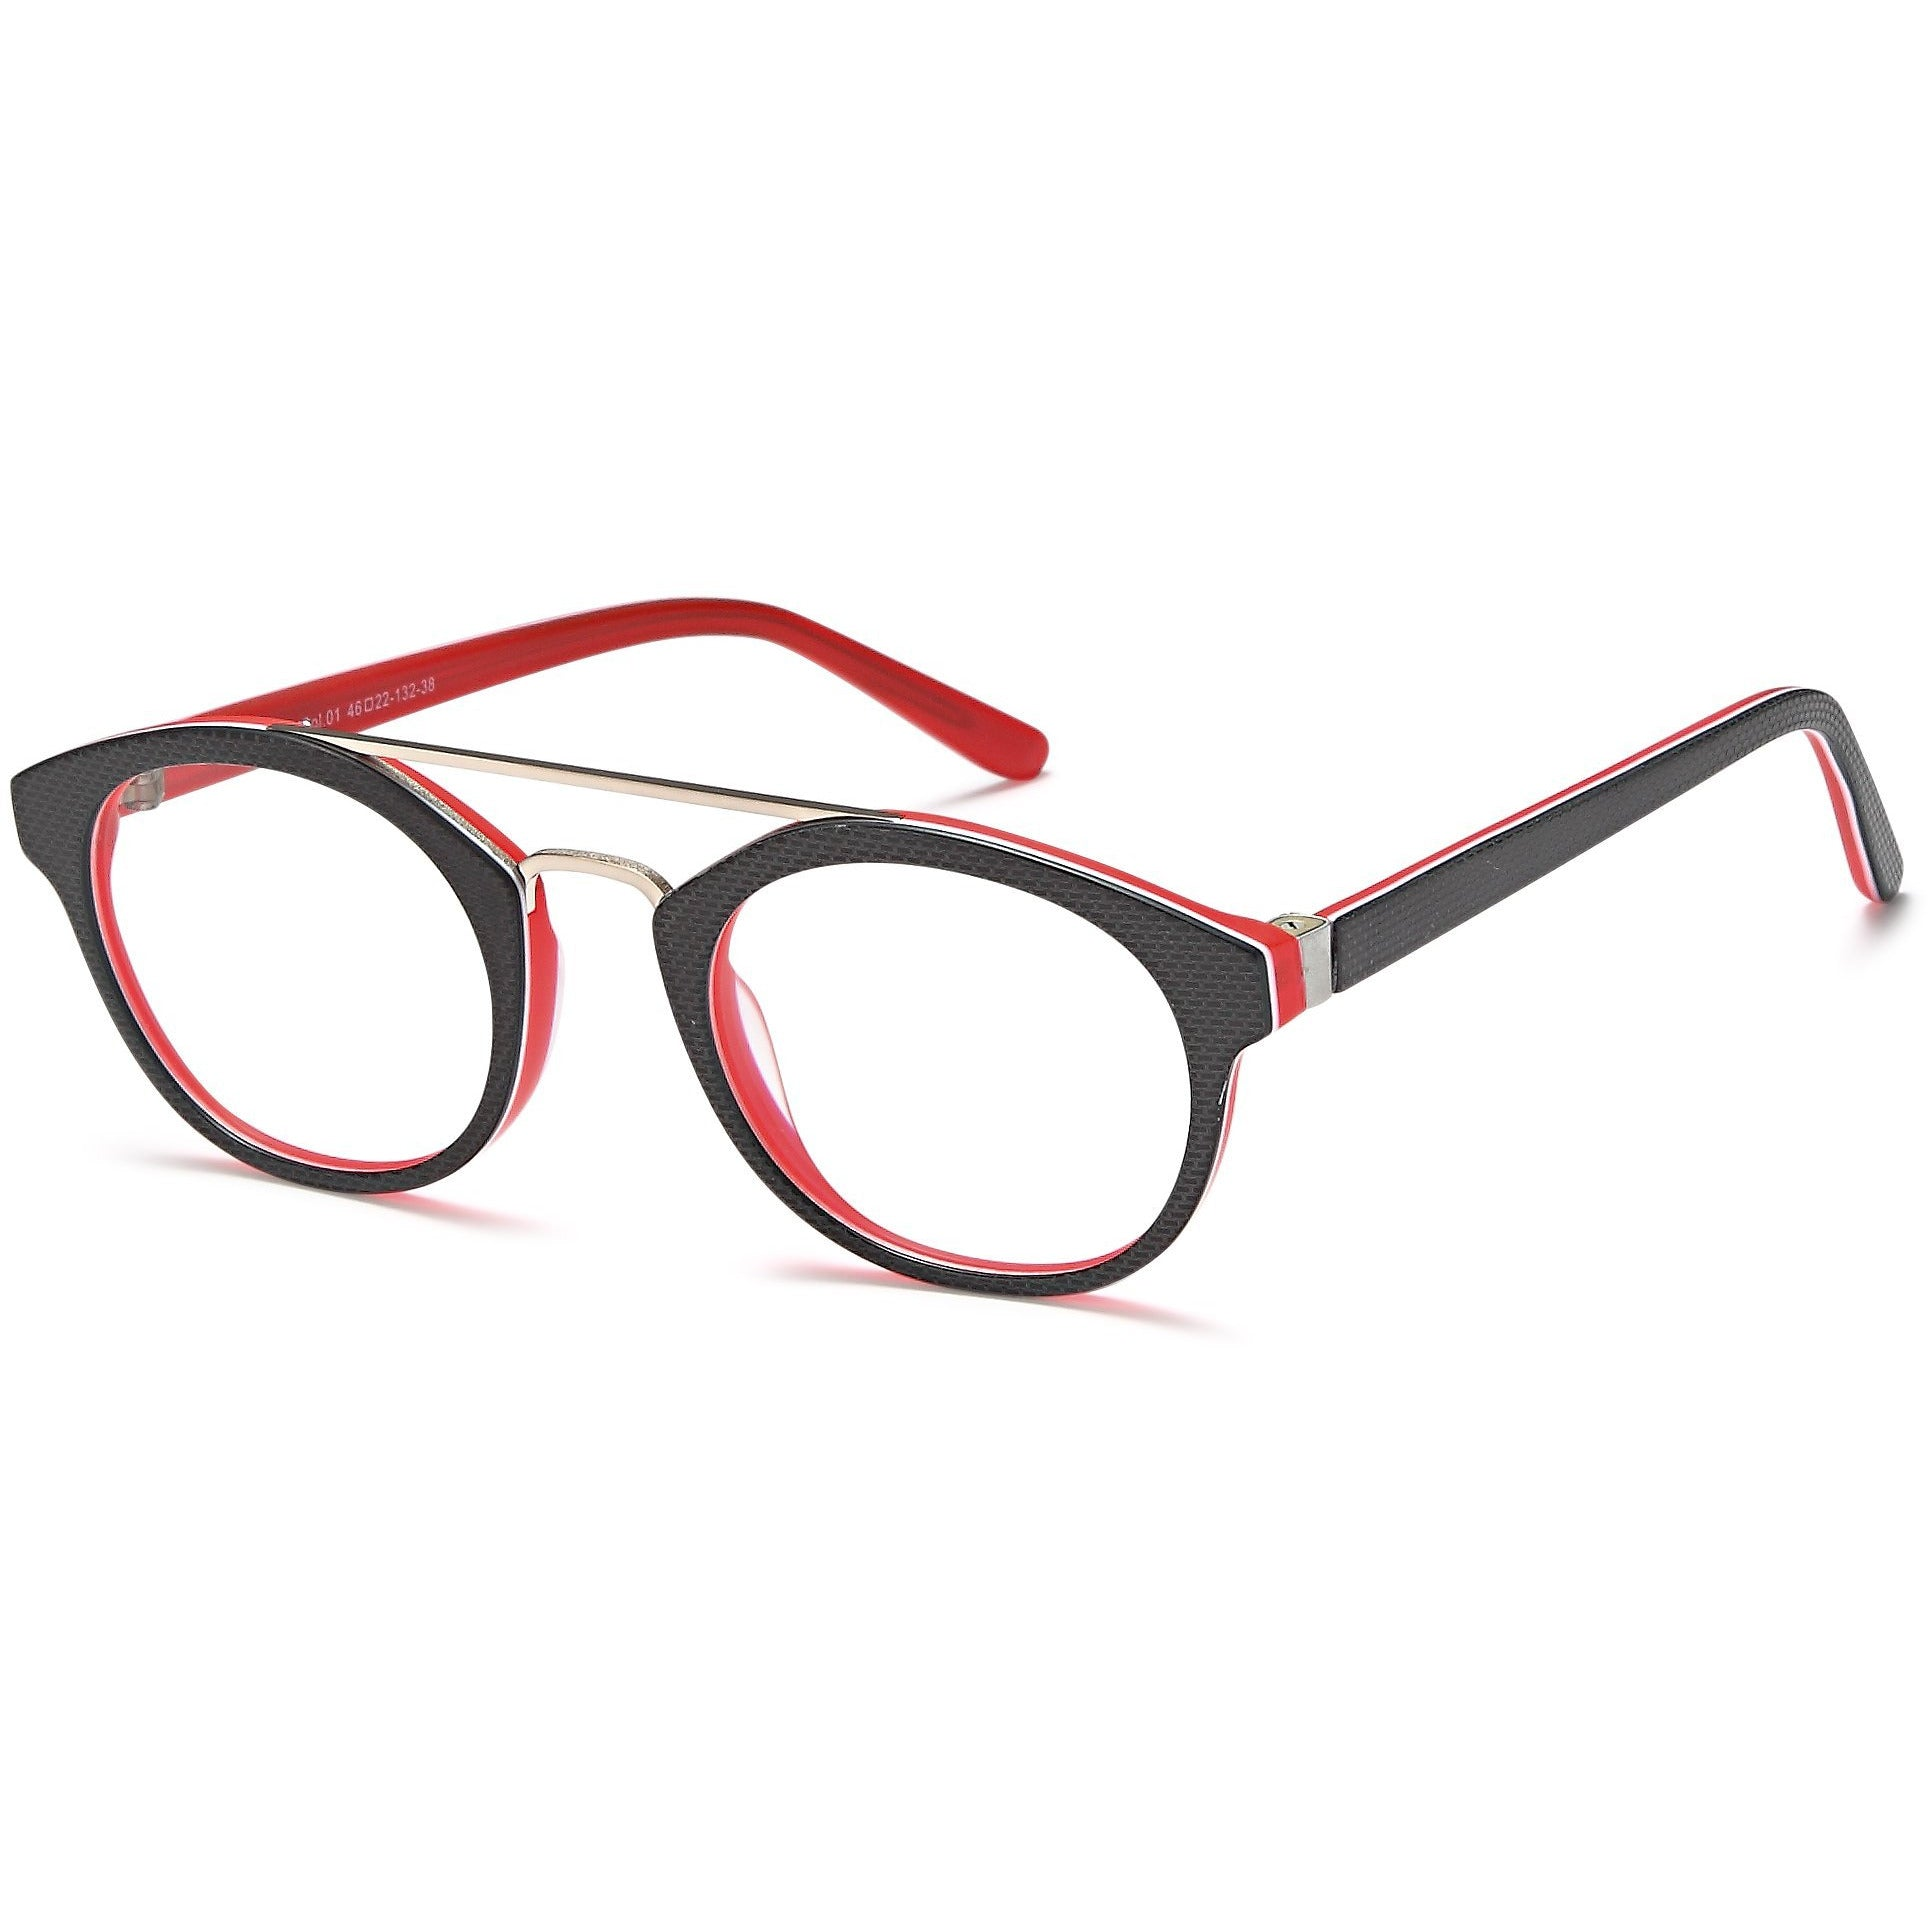 Menizzi Kids Prescription Glasses M4028K Eyeglasses Frames